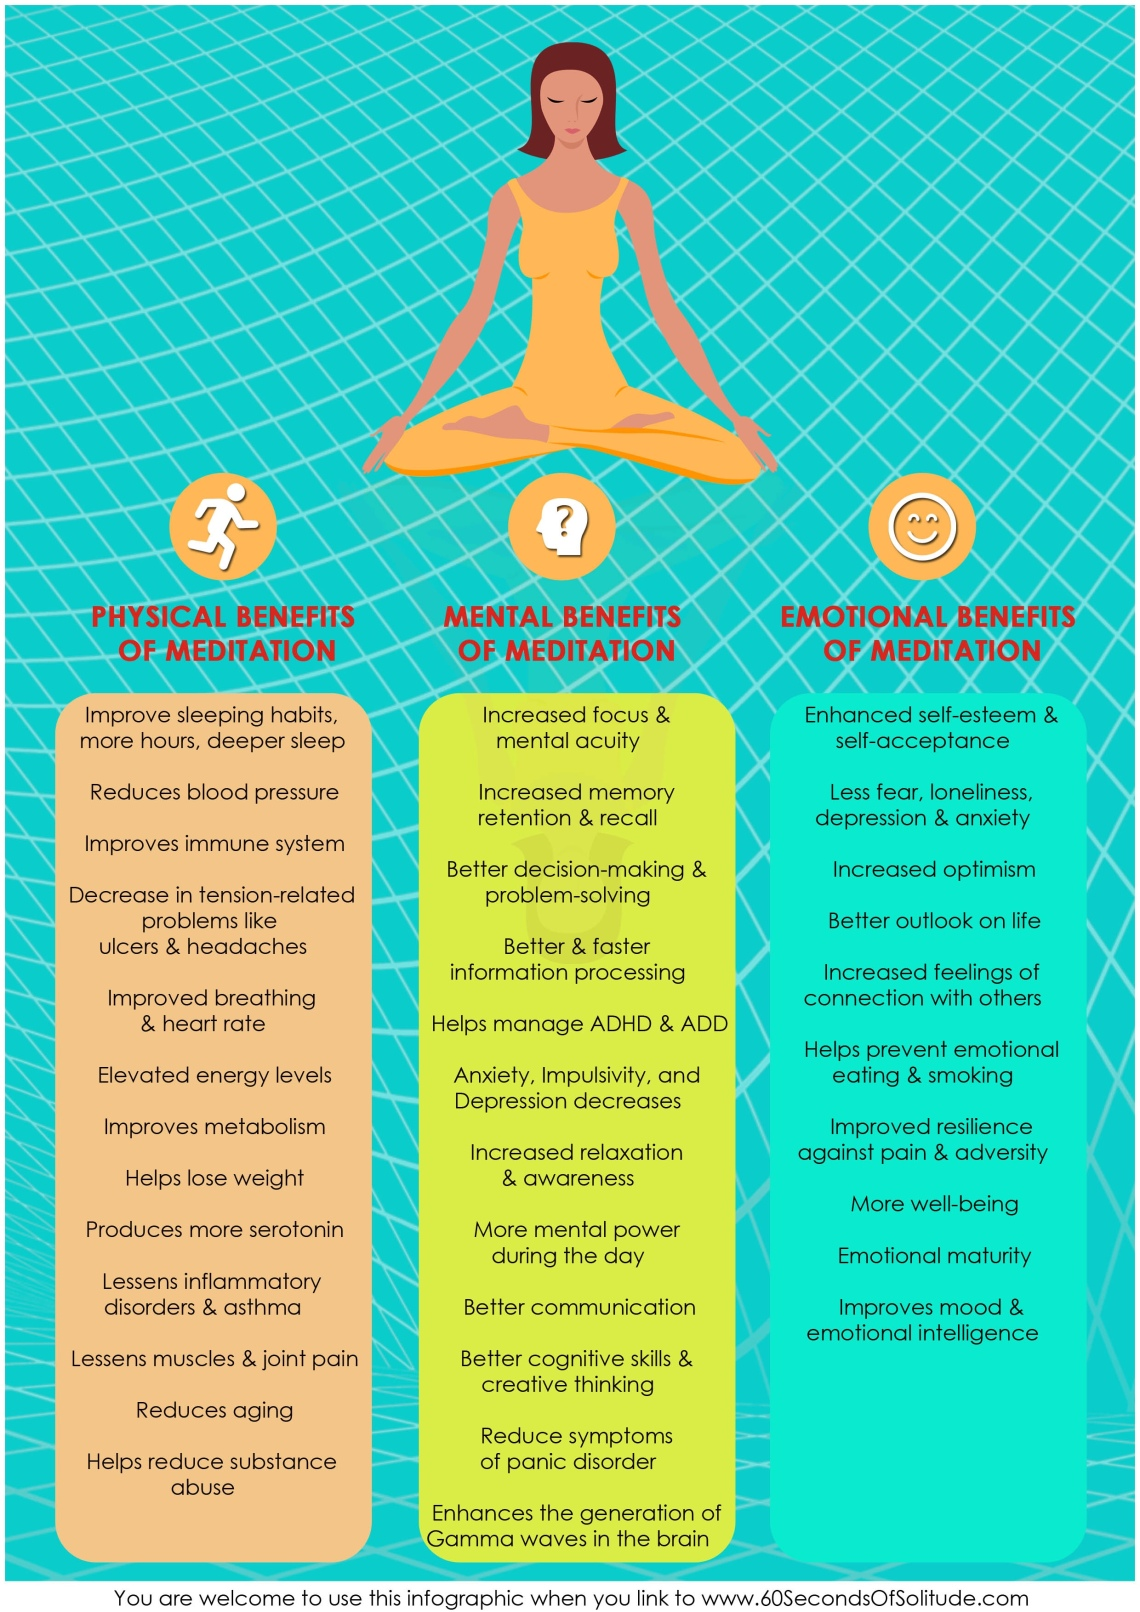 The physical, mental and emotional benefits of meditation